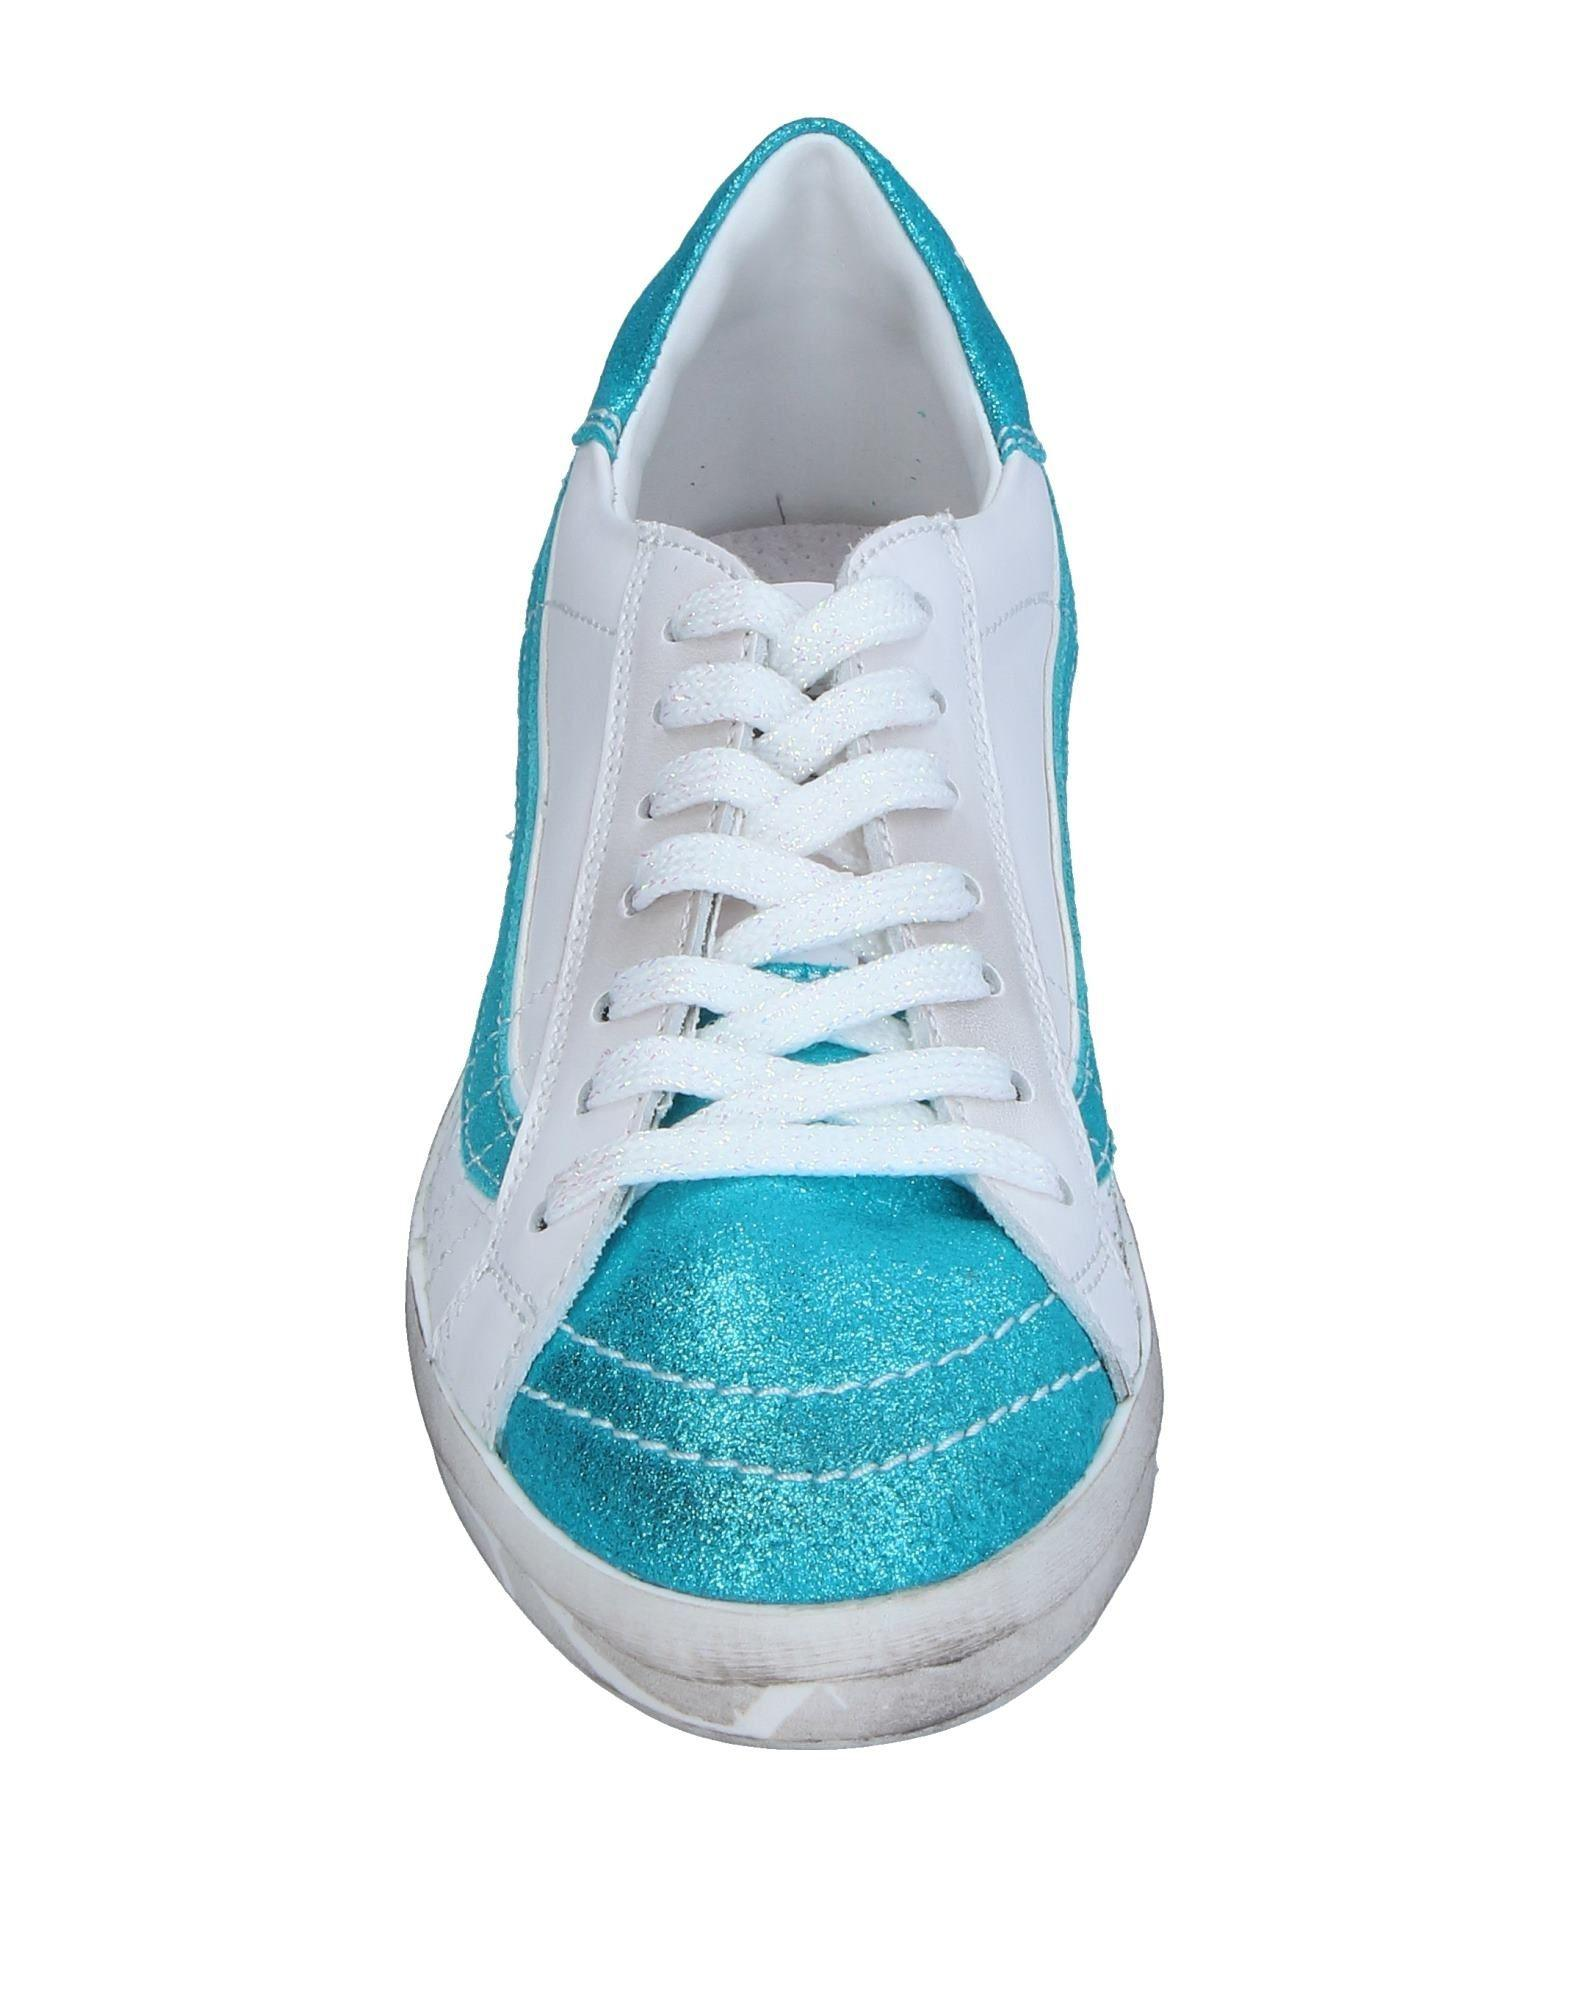 Primabase Leather Low-tops & Sneakers in Turquoise (Blue)